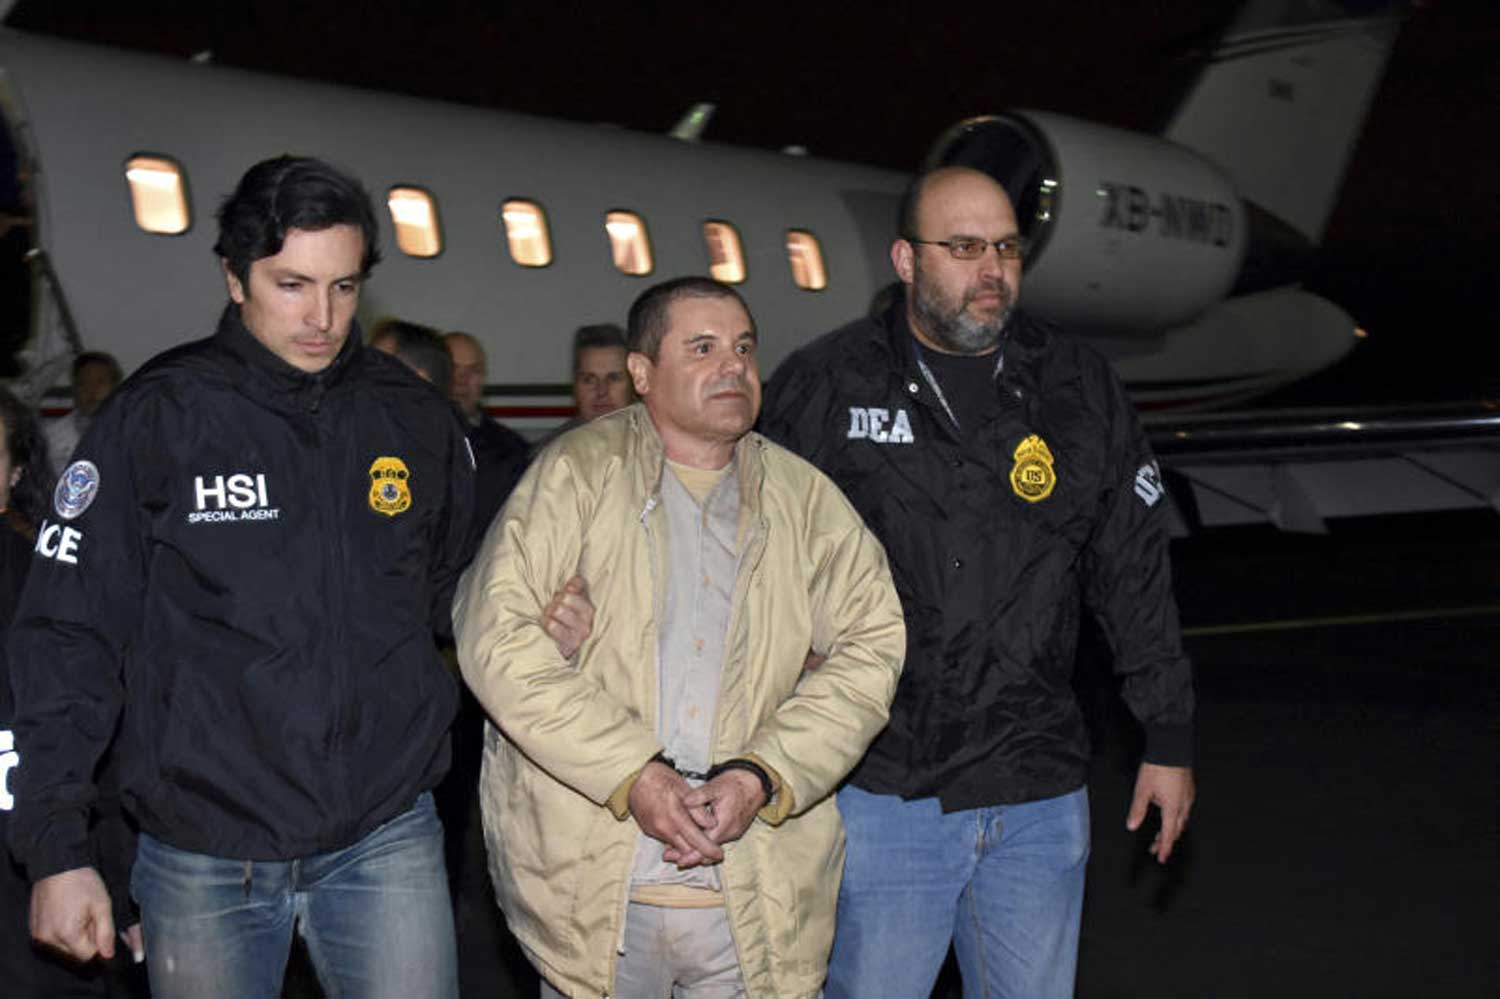 FILE - In this Jan 19, 2017, file photo provided by US law enforcement, authorities escort Joaquin